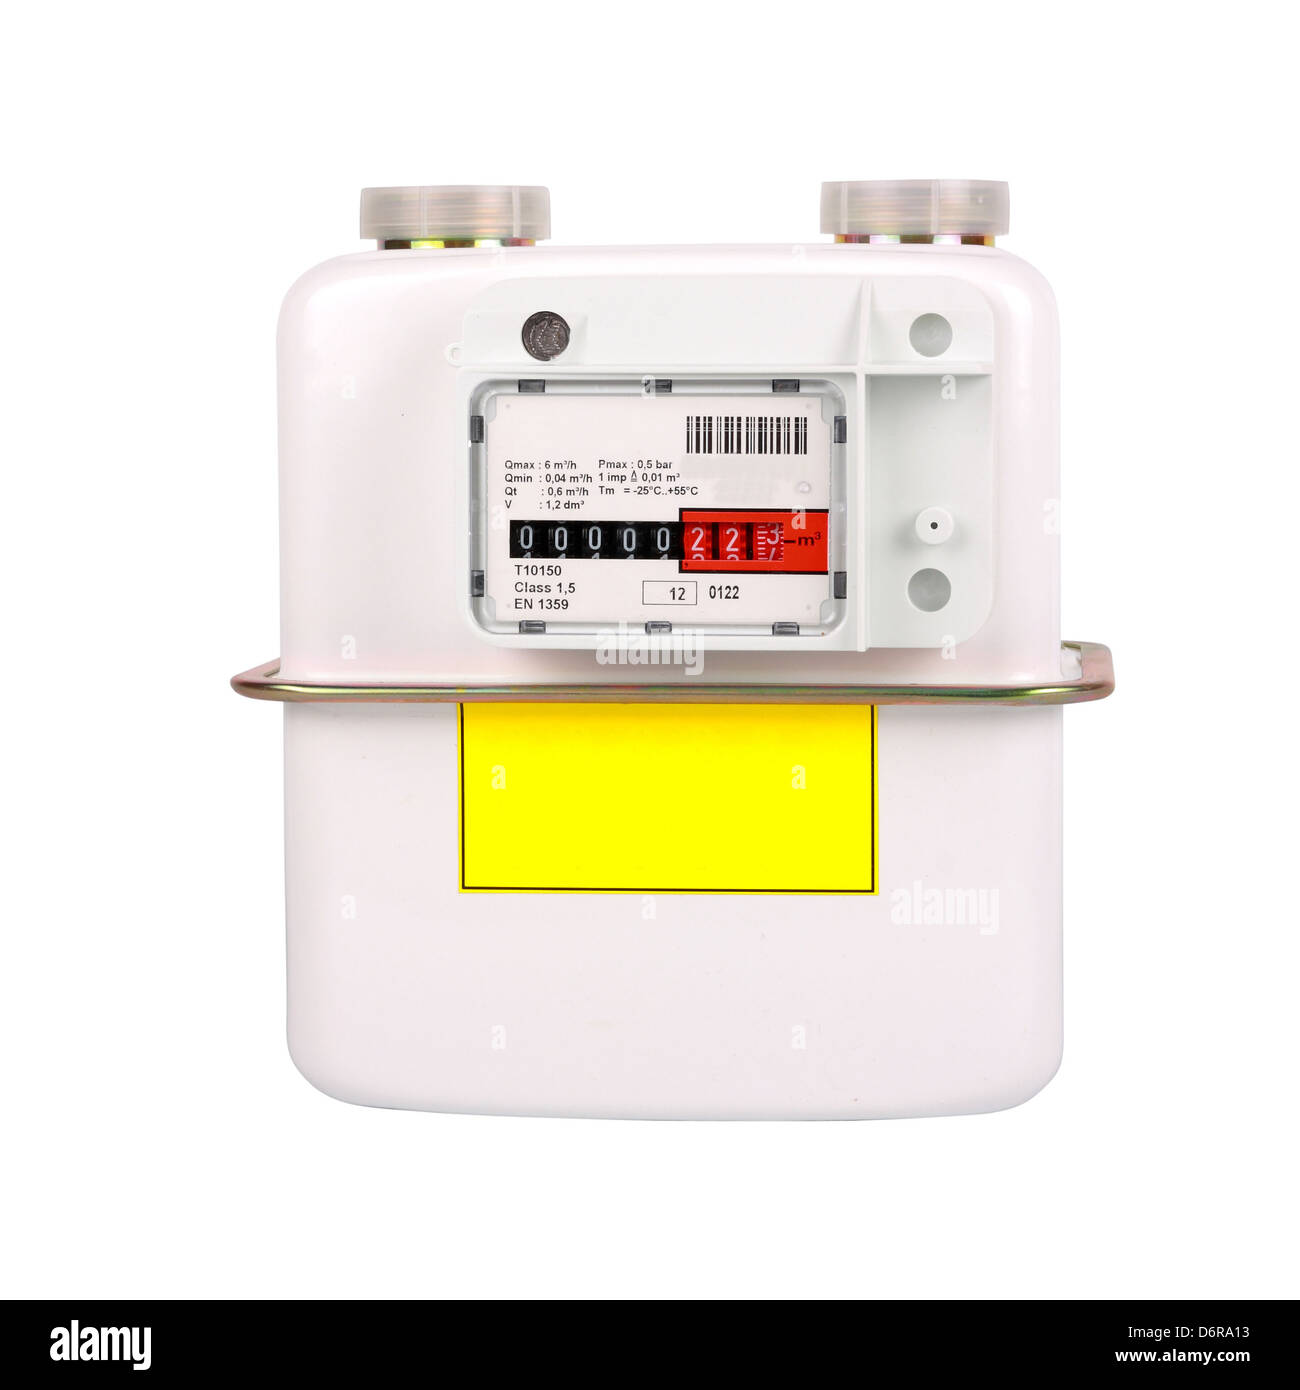 Natural Gas Meter. Isolated on white background. Including clipping path. All copyrighted elements removed. - Stock Image